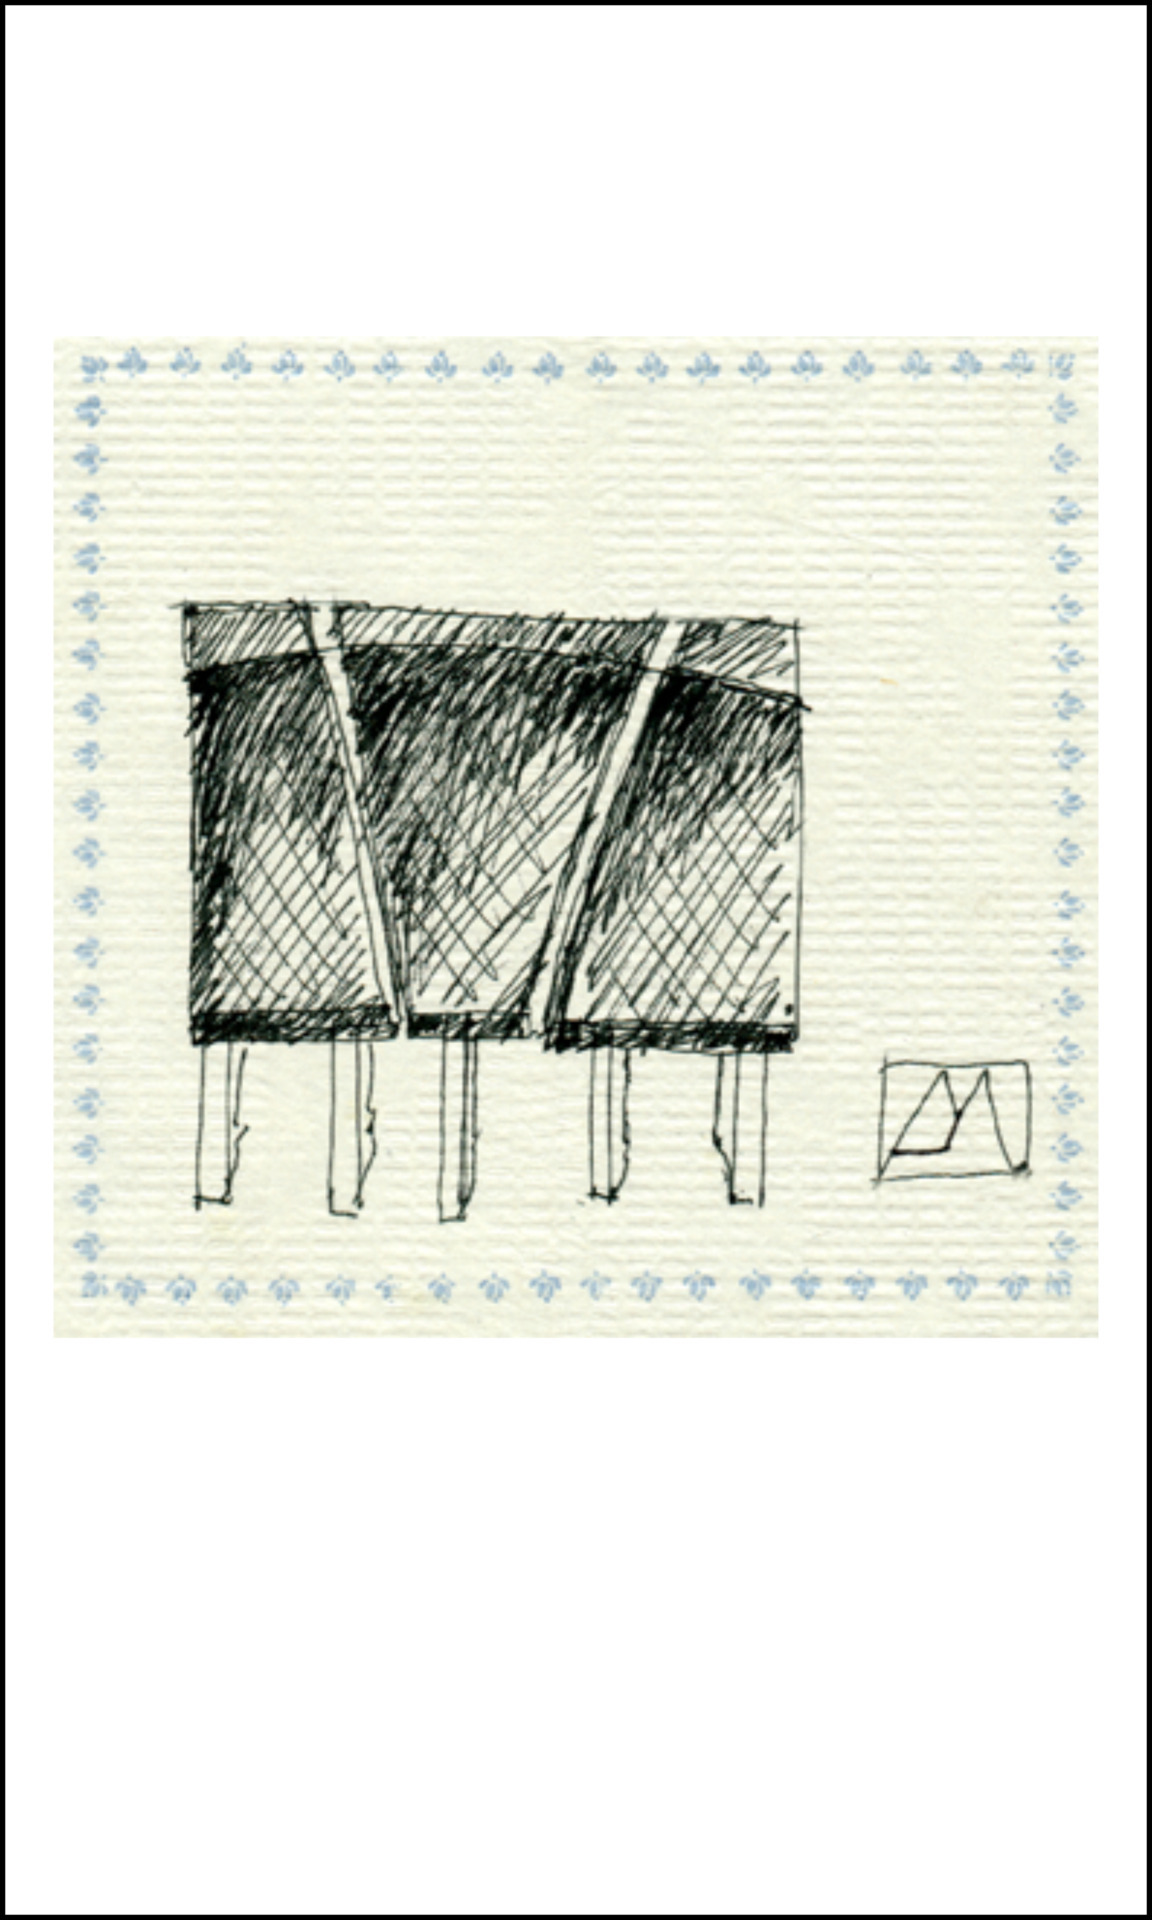 trapezum tip-toe sectional tables (pen drawing on cocktail napkin